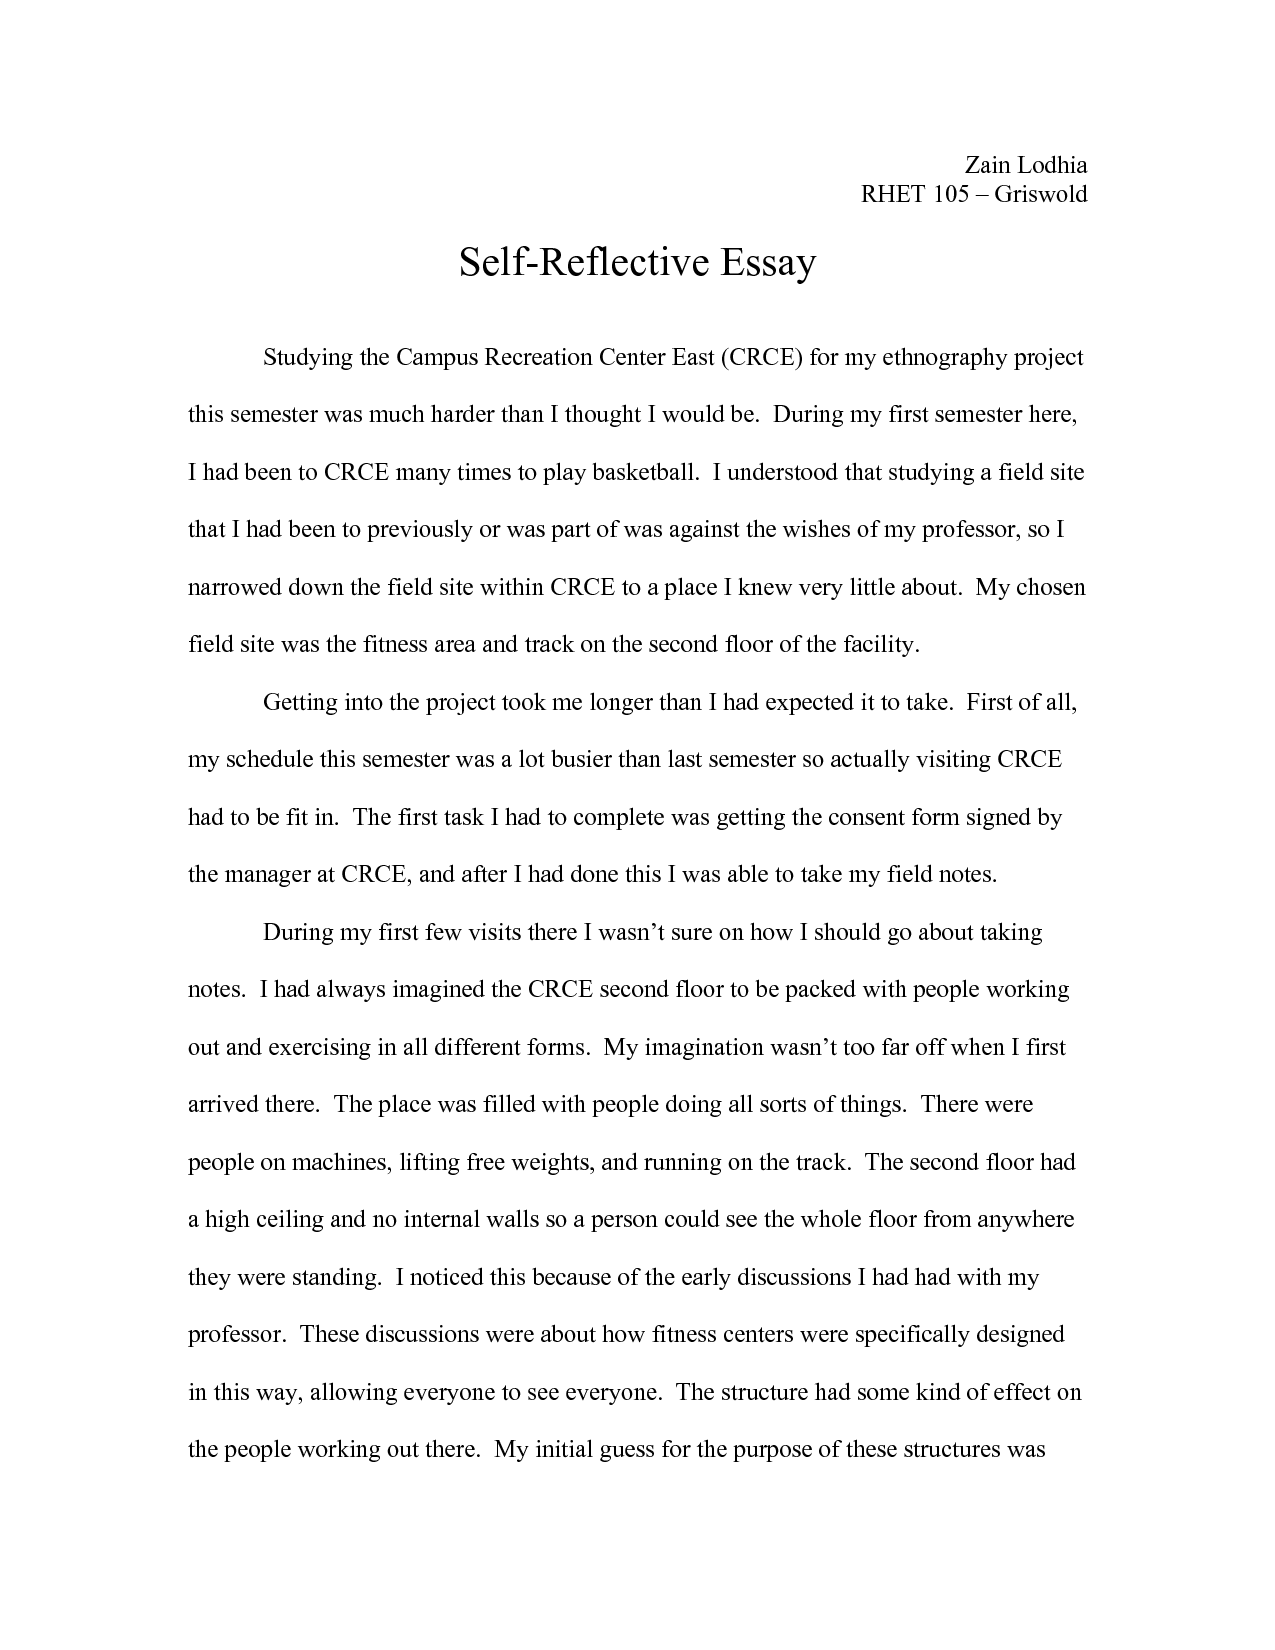 003 Qal0pwnf46 Reflective Essays Beautiful Essay Examples About Life Pdf Apa Full